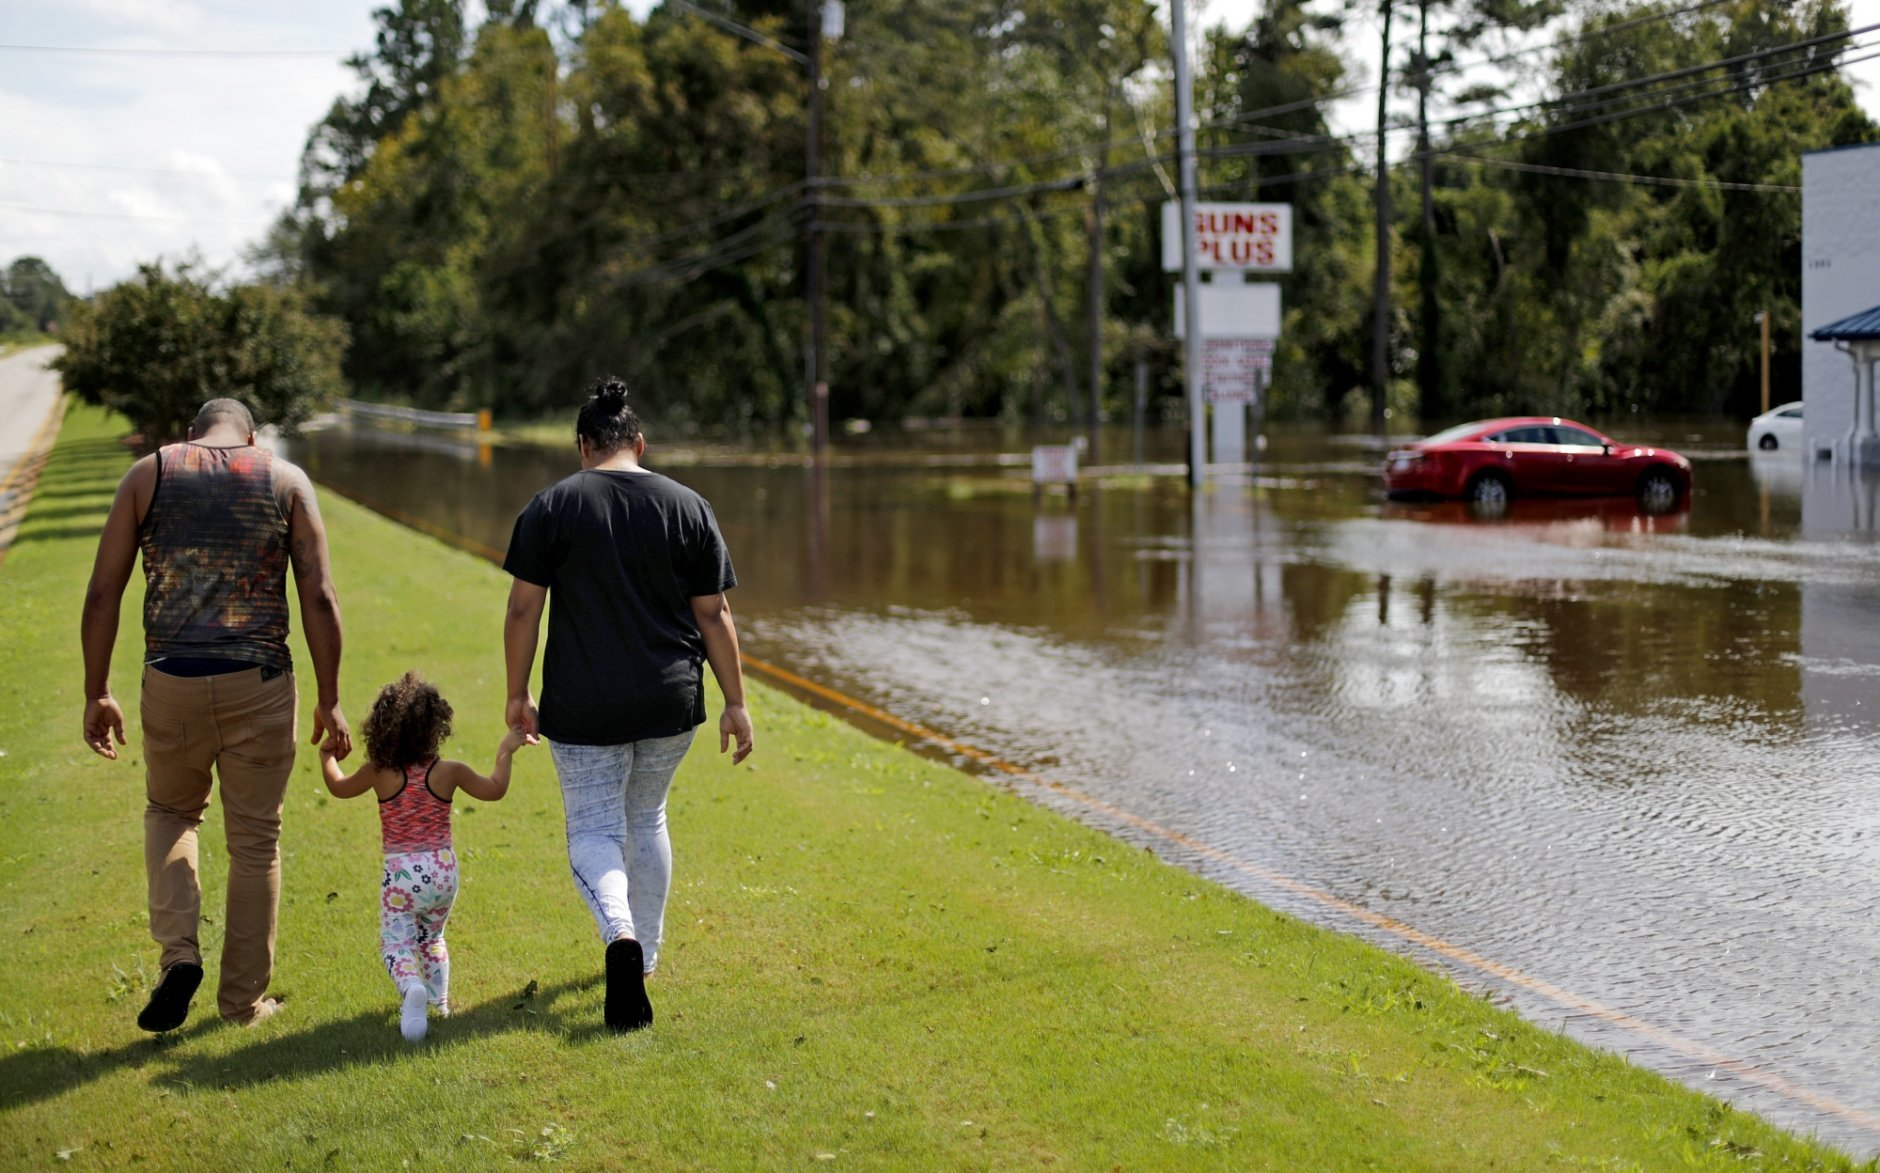 A couple walks with their daughter after checking on their flooded home in the aftermath of Hurricane Florence in Spring Lake, N.C., Monday, Sept. 17, 2018. (AP Photo/David Goldman)